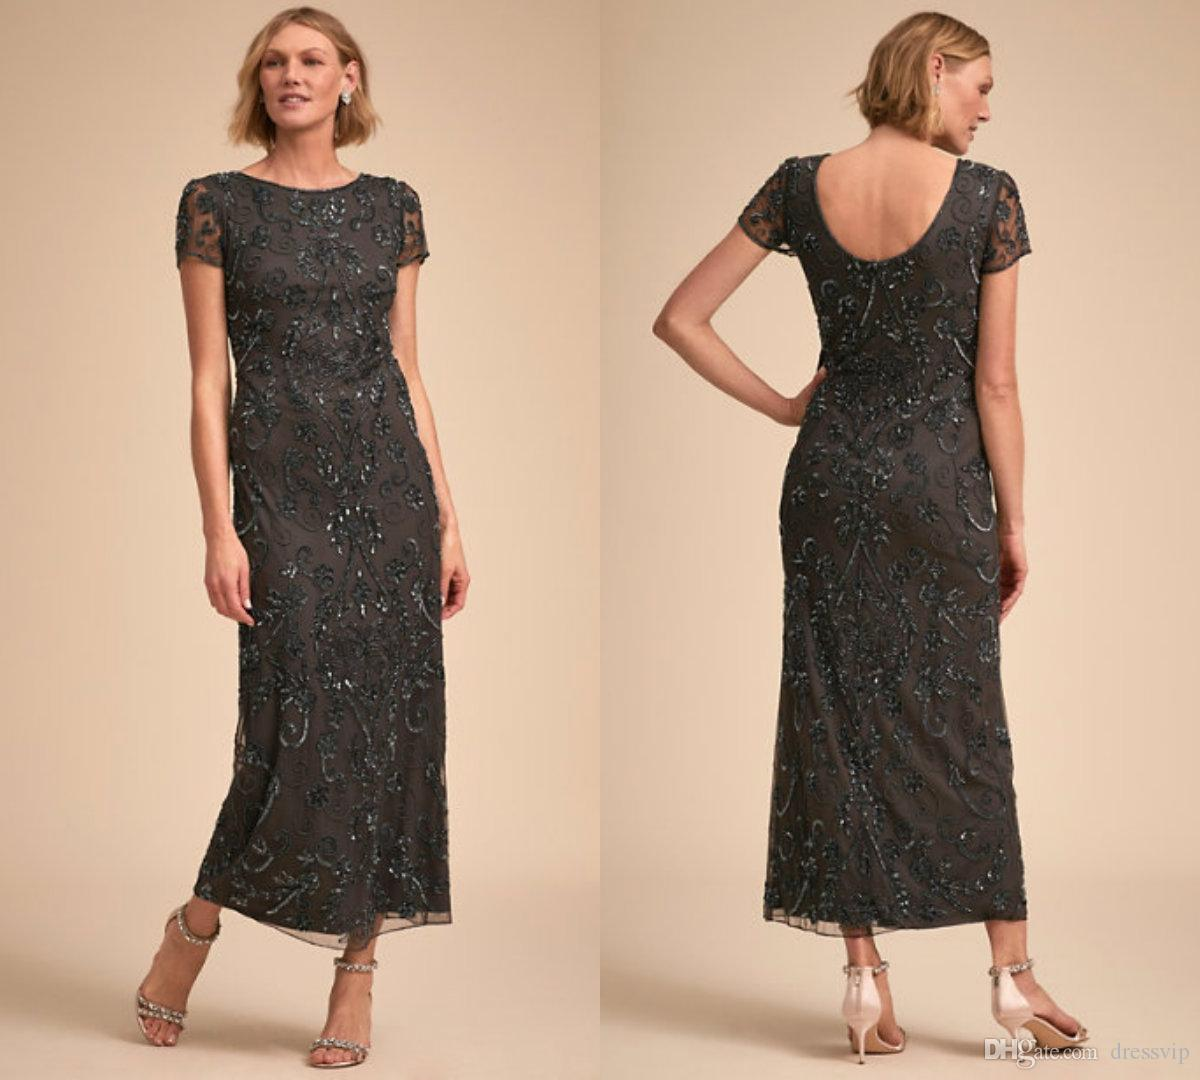 f231f6e07c1 2018 BHLDN Mother Of The Bride Dresses Jewel Neck Lace Applique Knee Length  Short Sleeve Elegant Mother S Gowns Prom Party Wear Beaded Joan Rivers ...